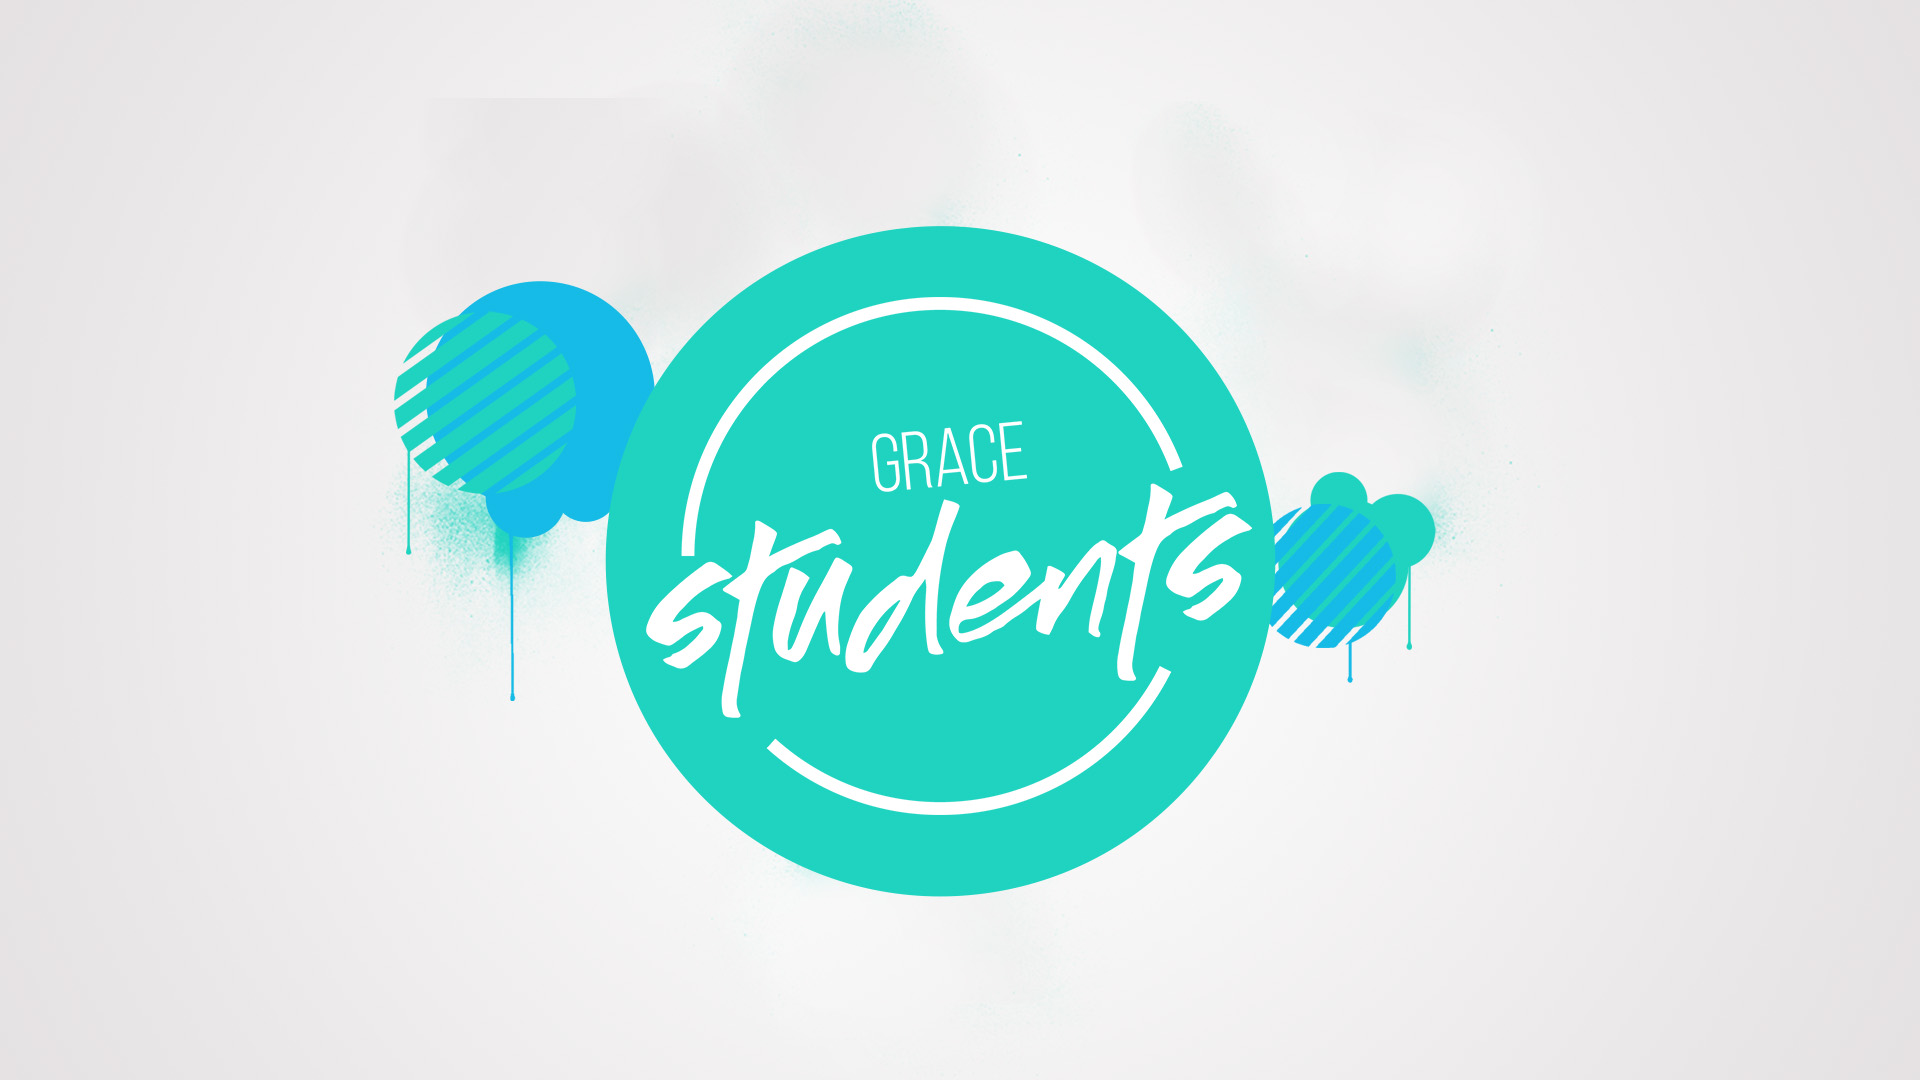 GRACE STUDENTS